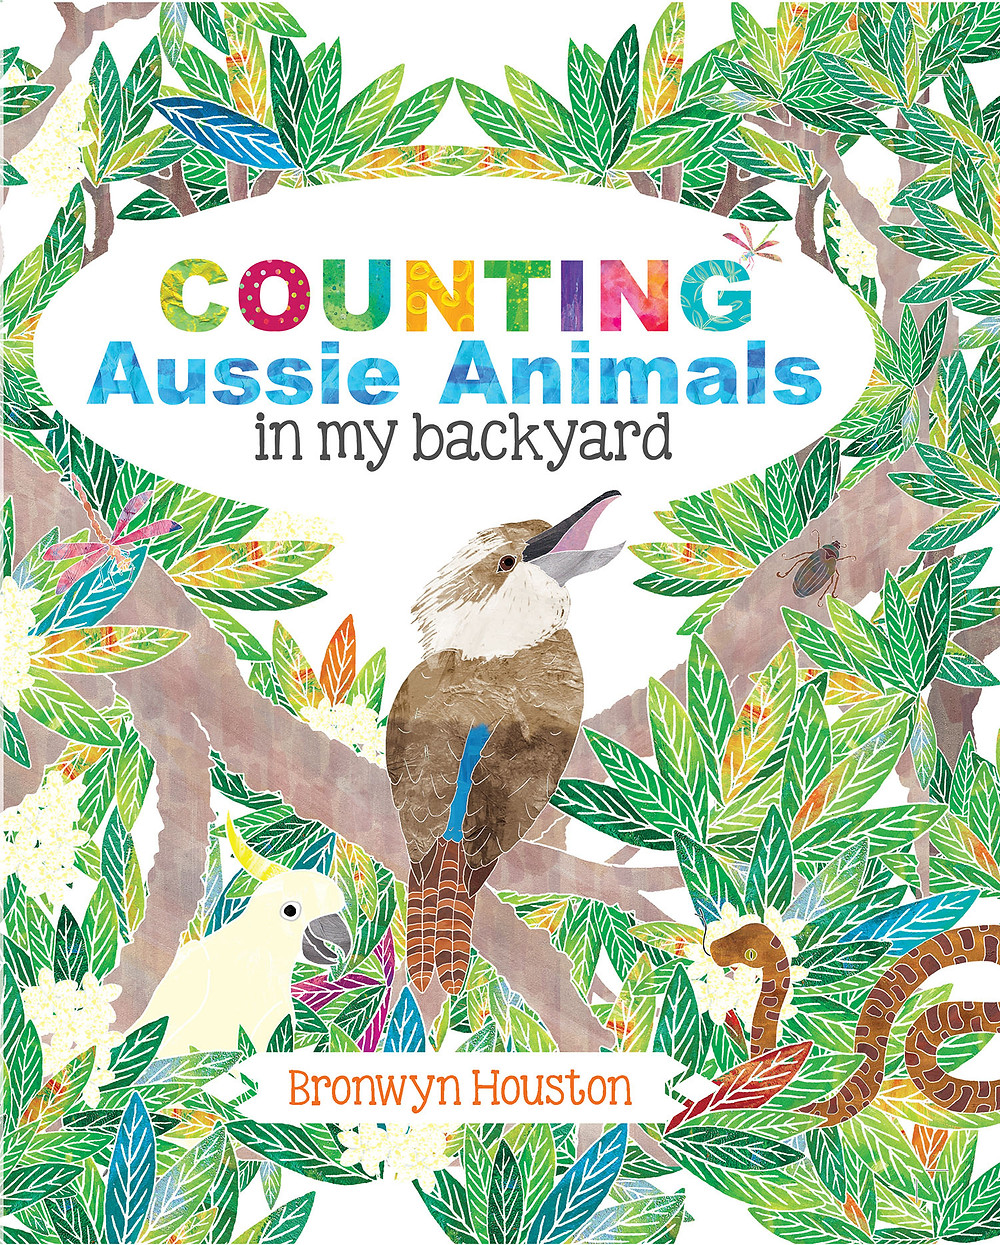 Counting Aussie Animals in my Backyard - Indigenous Book